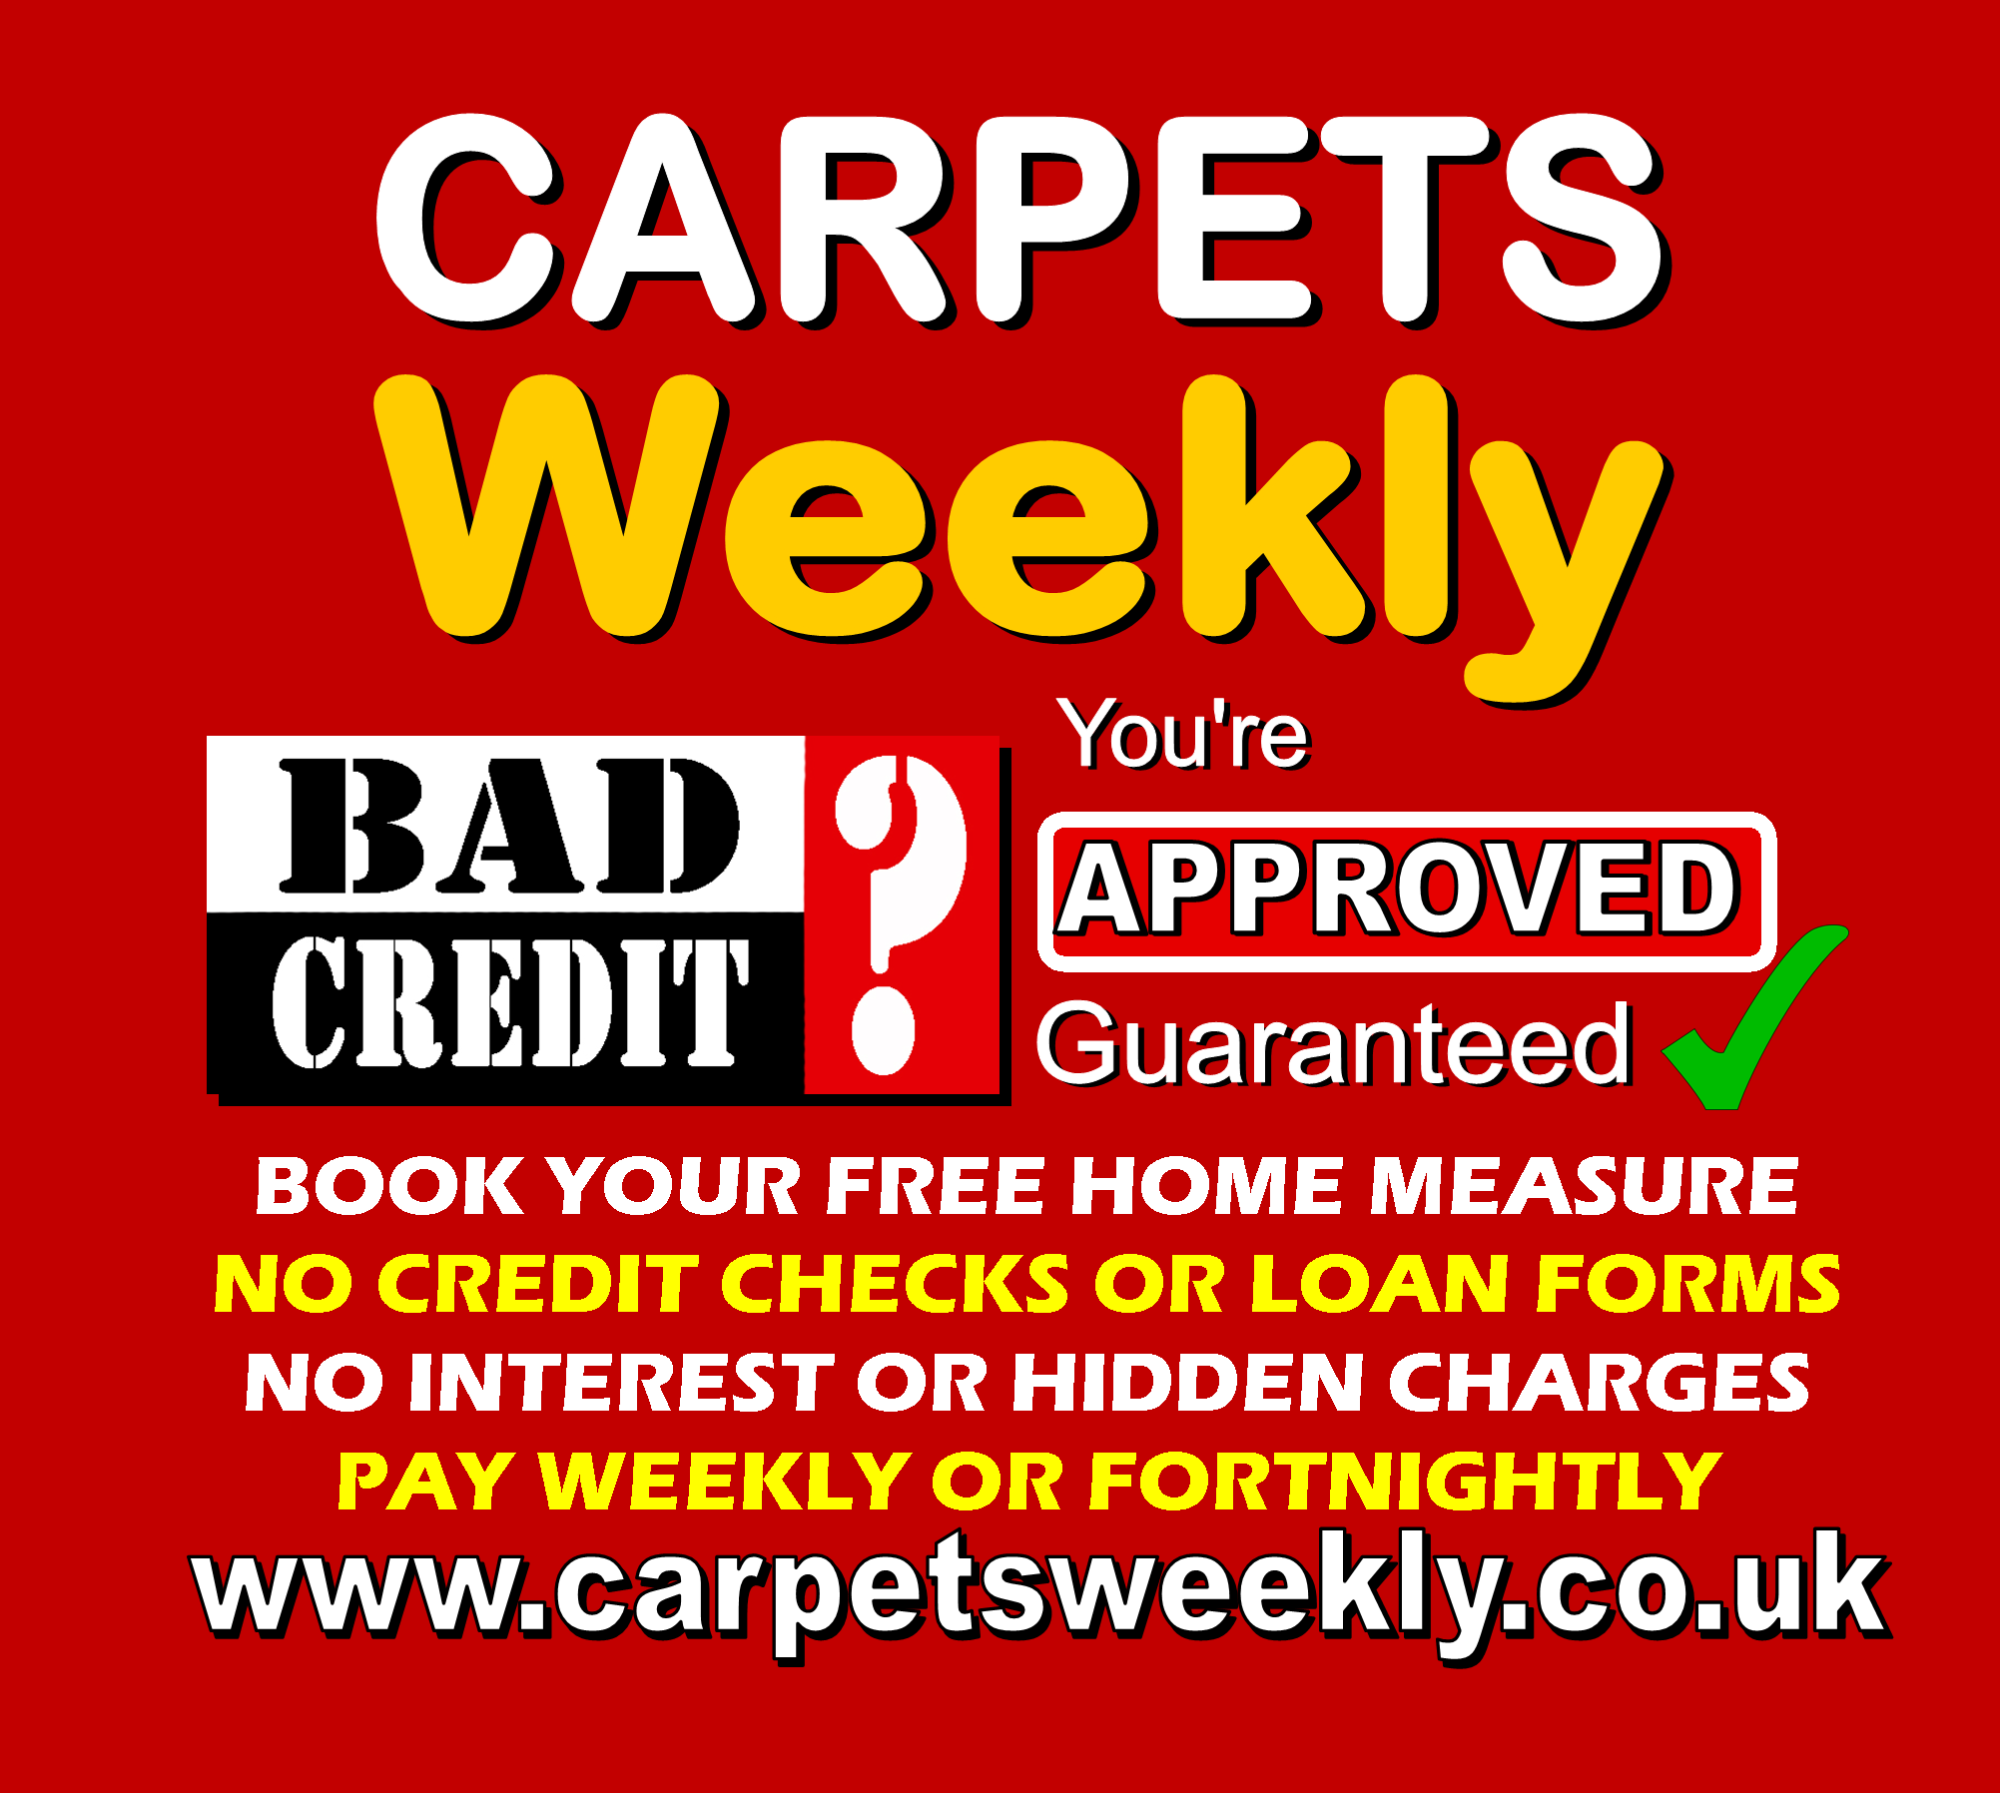 Carpets Weekly Guaranteed Credit